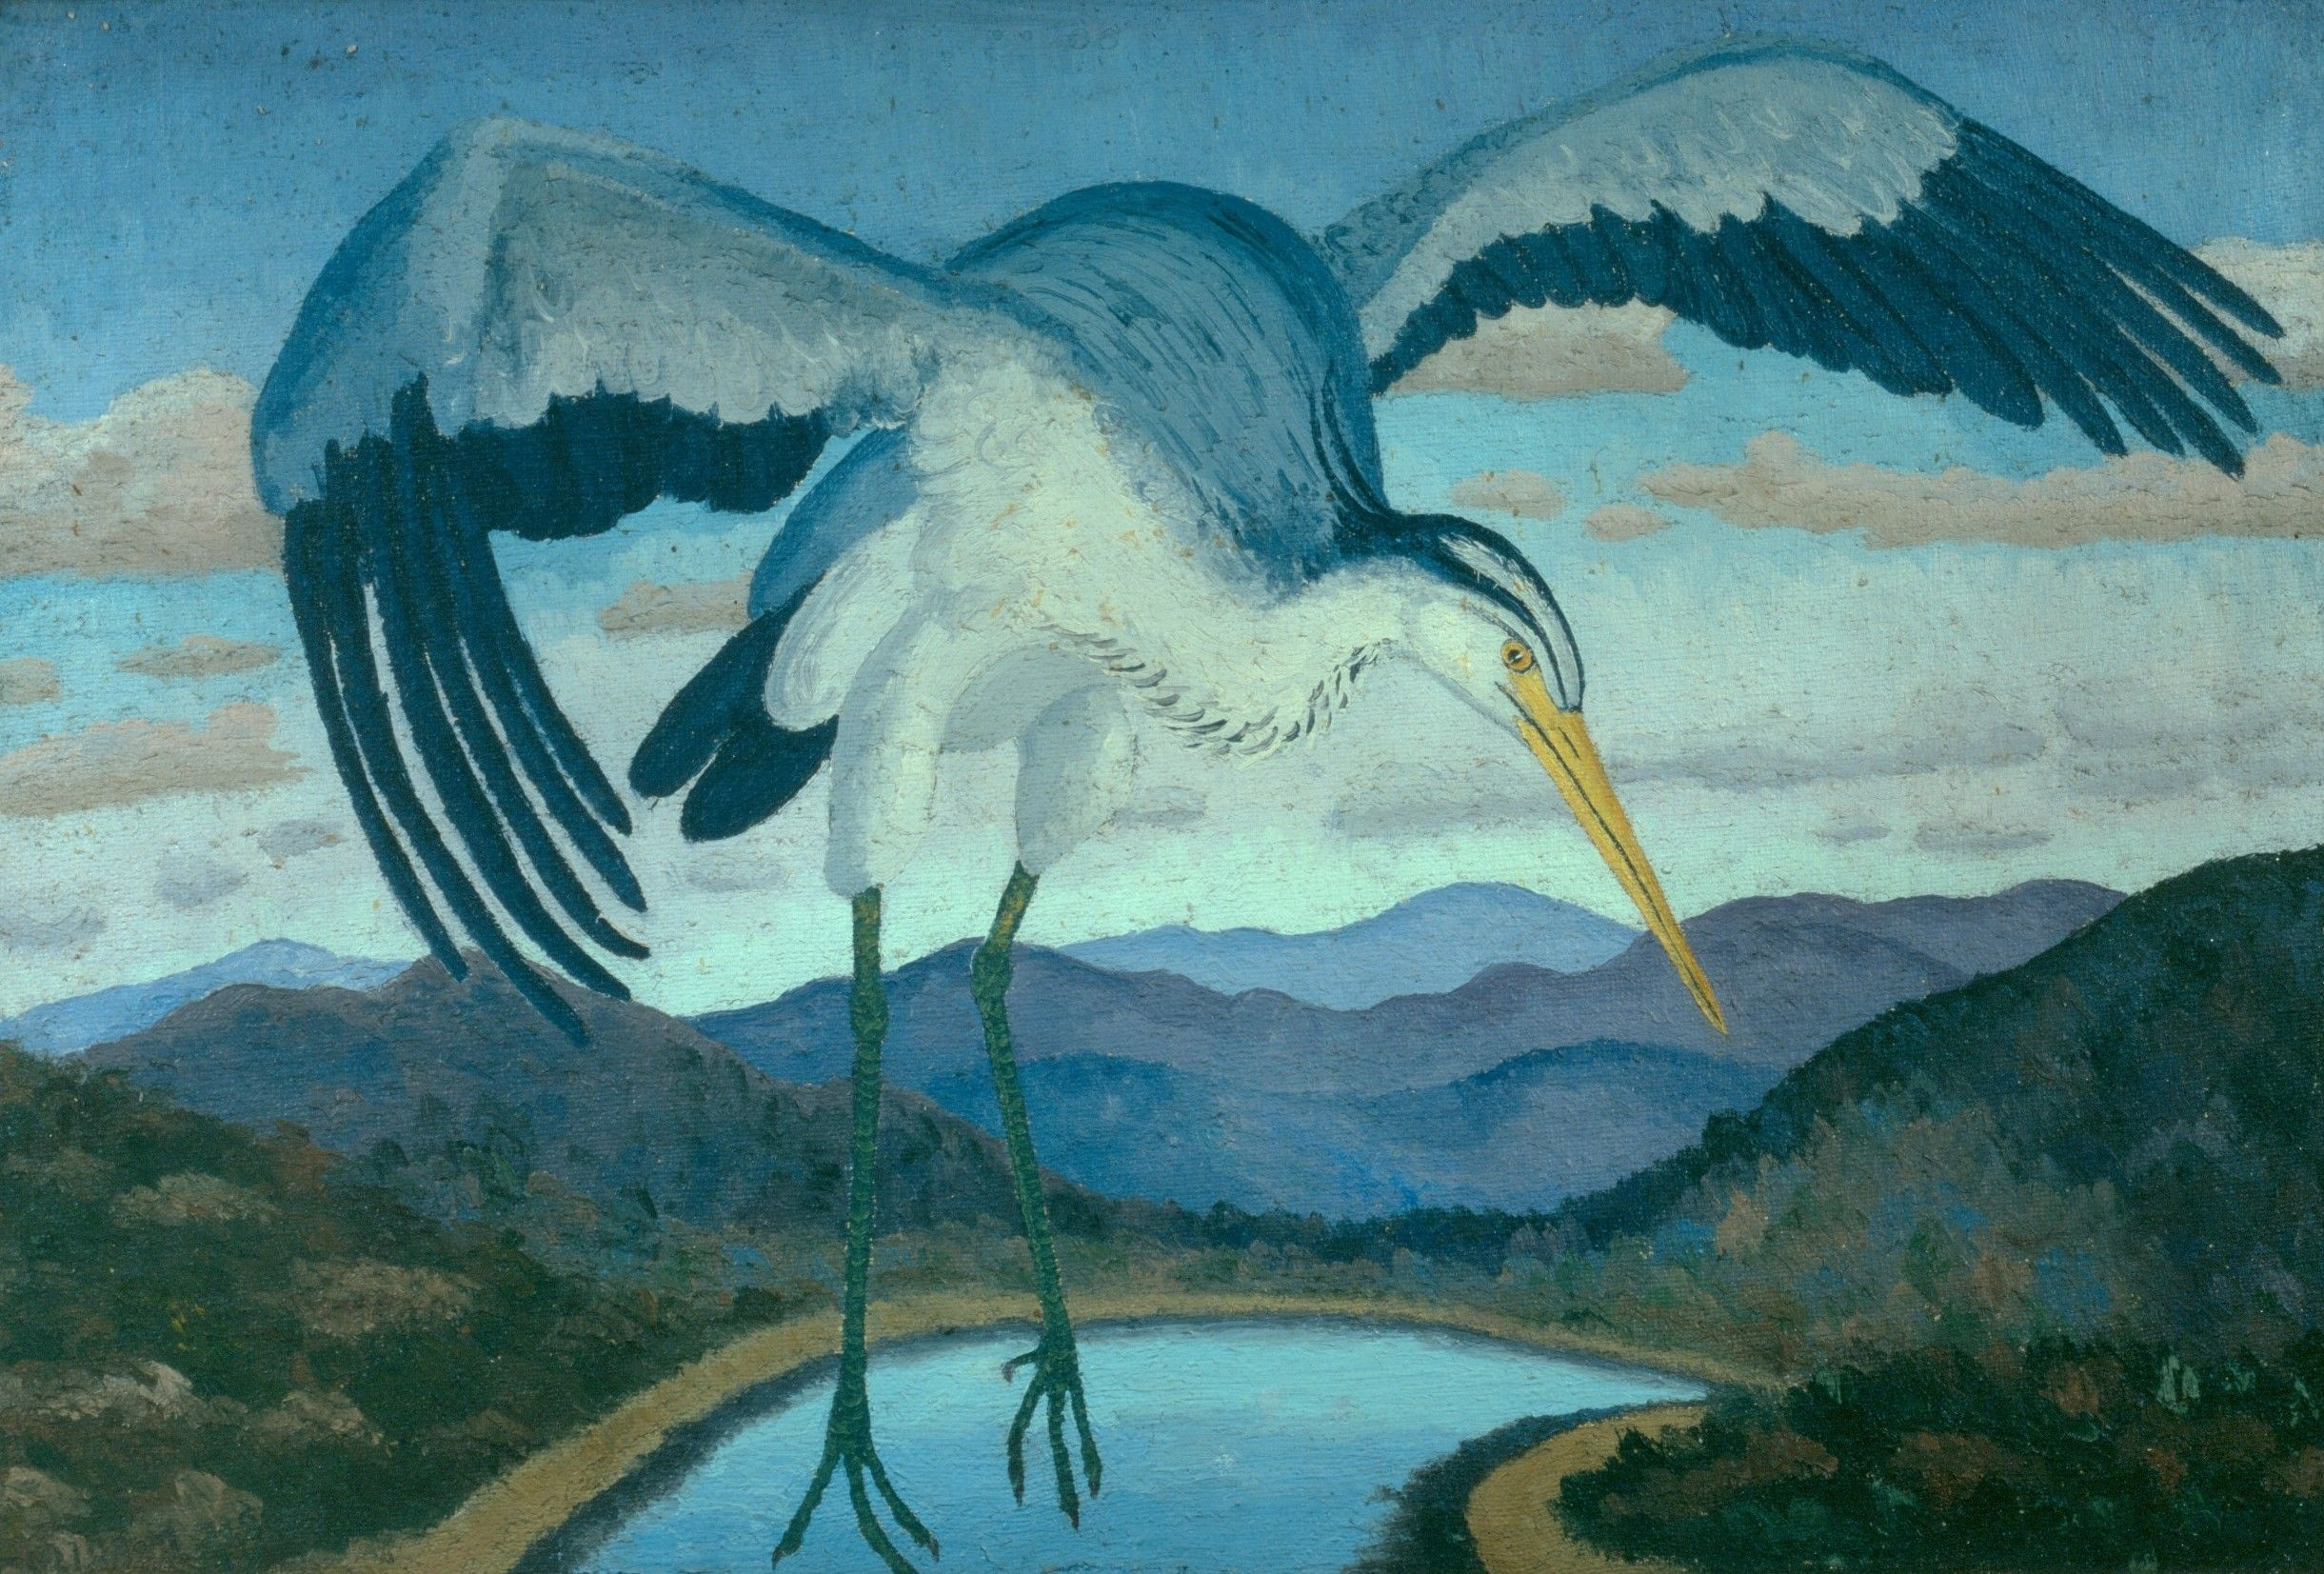 The Heron by Sir Cedric Morris, one of several works in the Astley Cheetham Art collection that is currently touring China as part of a Greater Manchester Museums Group touring exhibition.